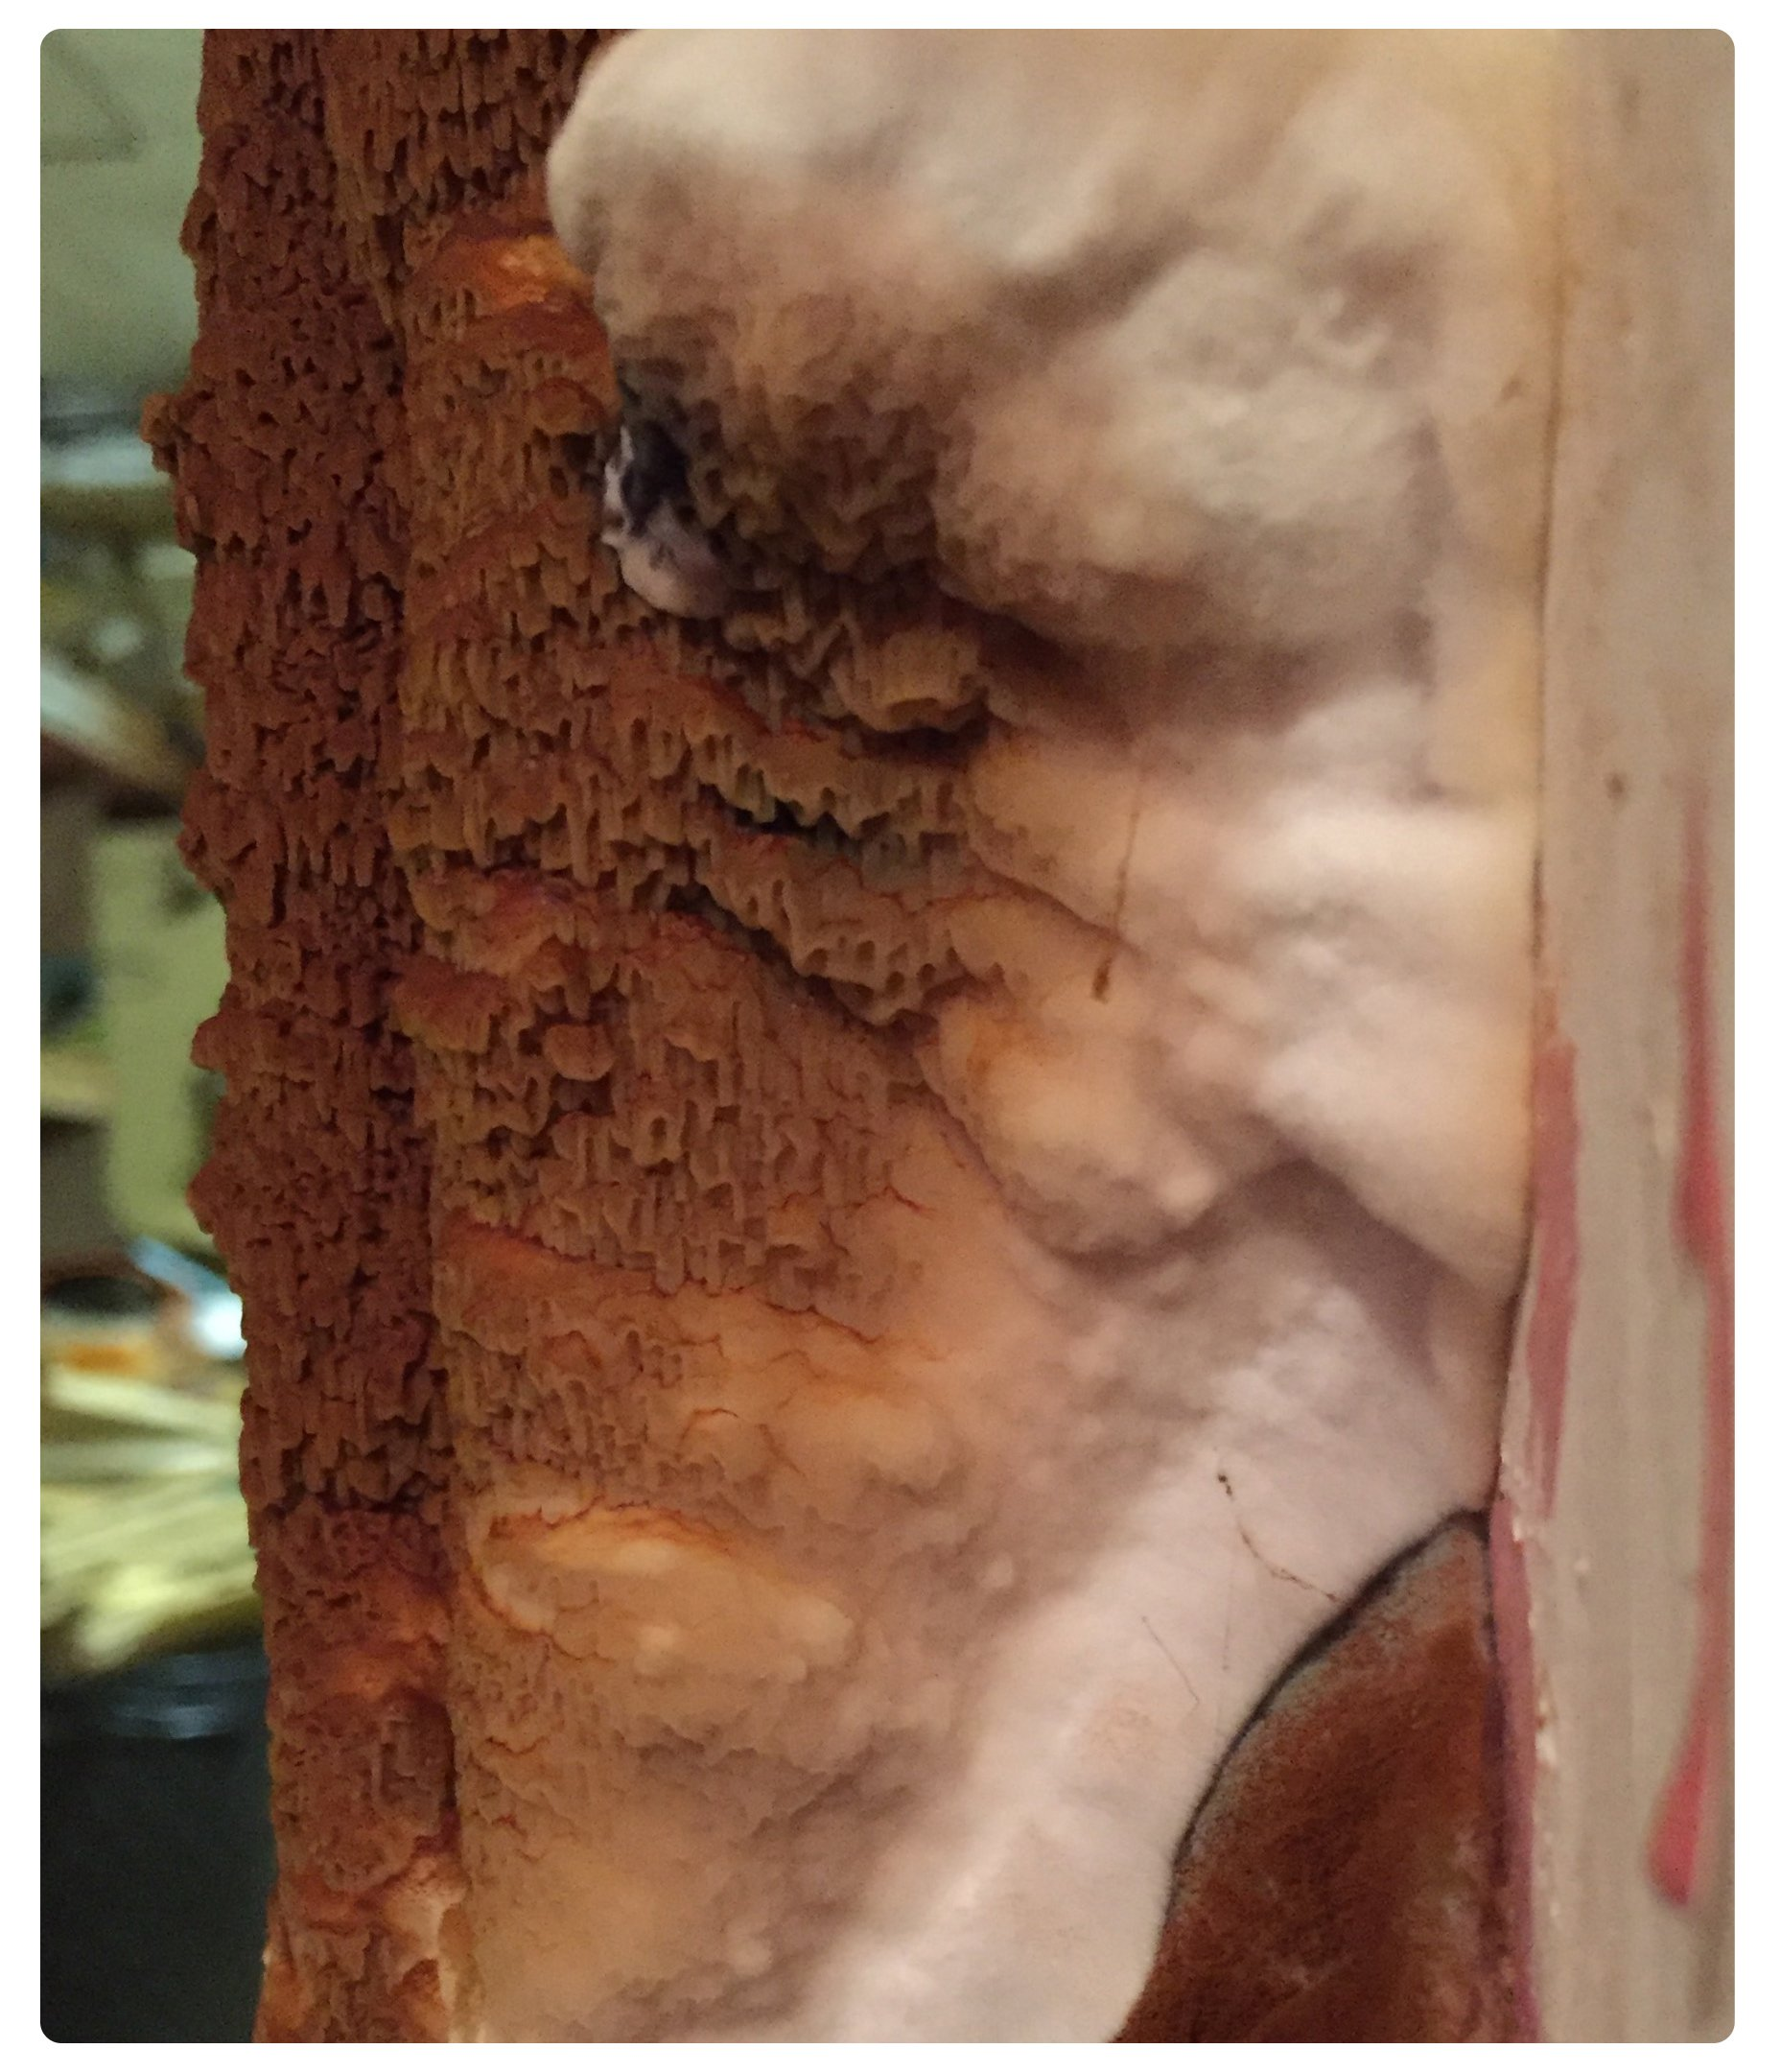 Dry rot spore